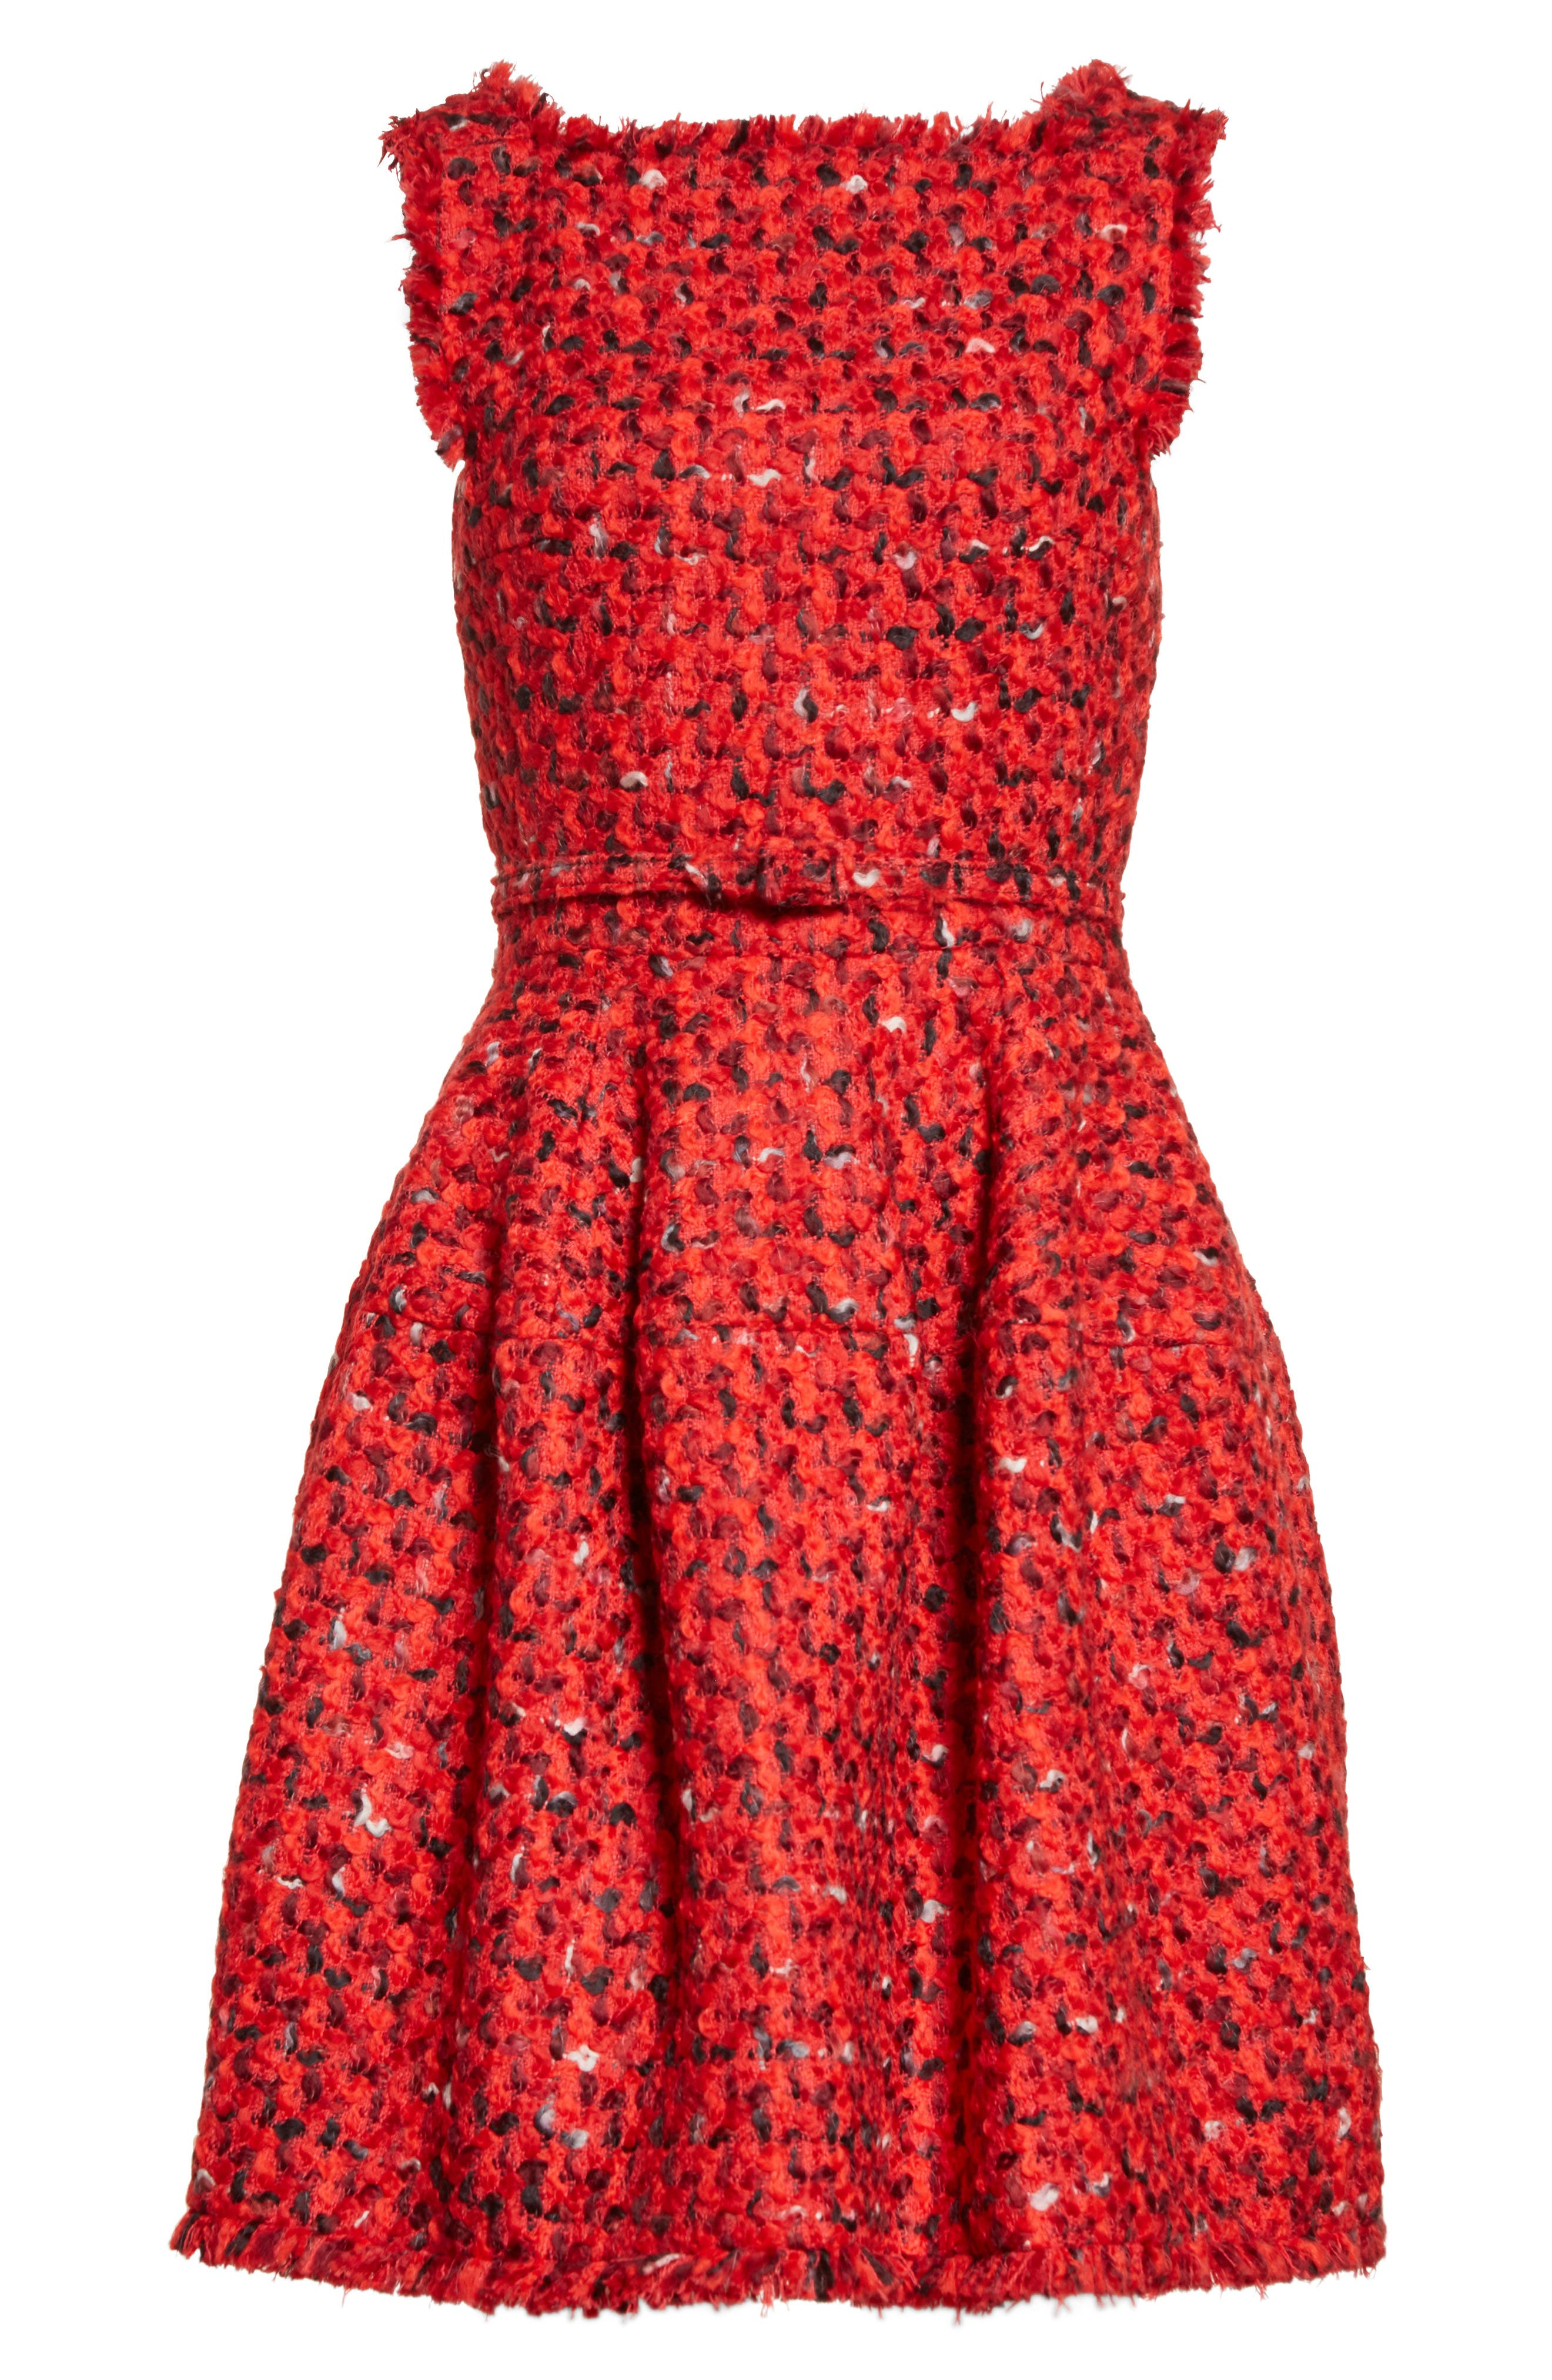 Belted Tweed Dress,                             Alternate thumbnail 4, color,                             Red Multi